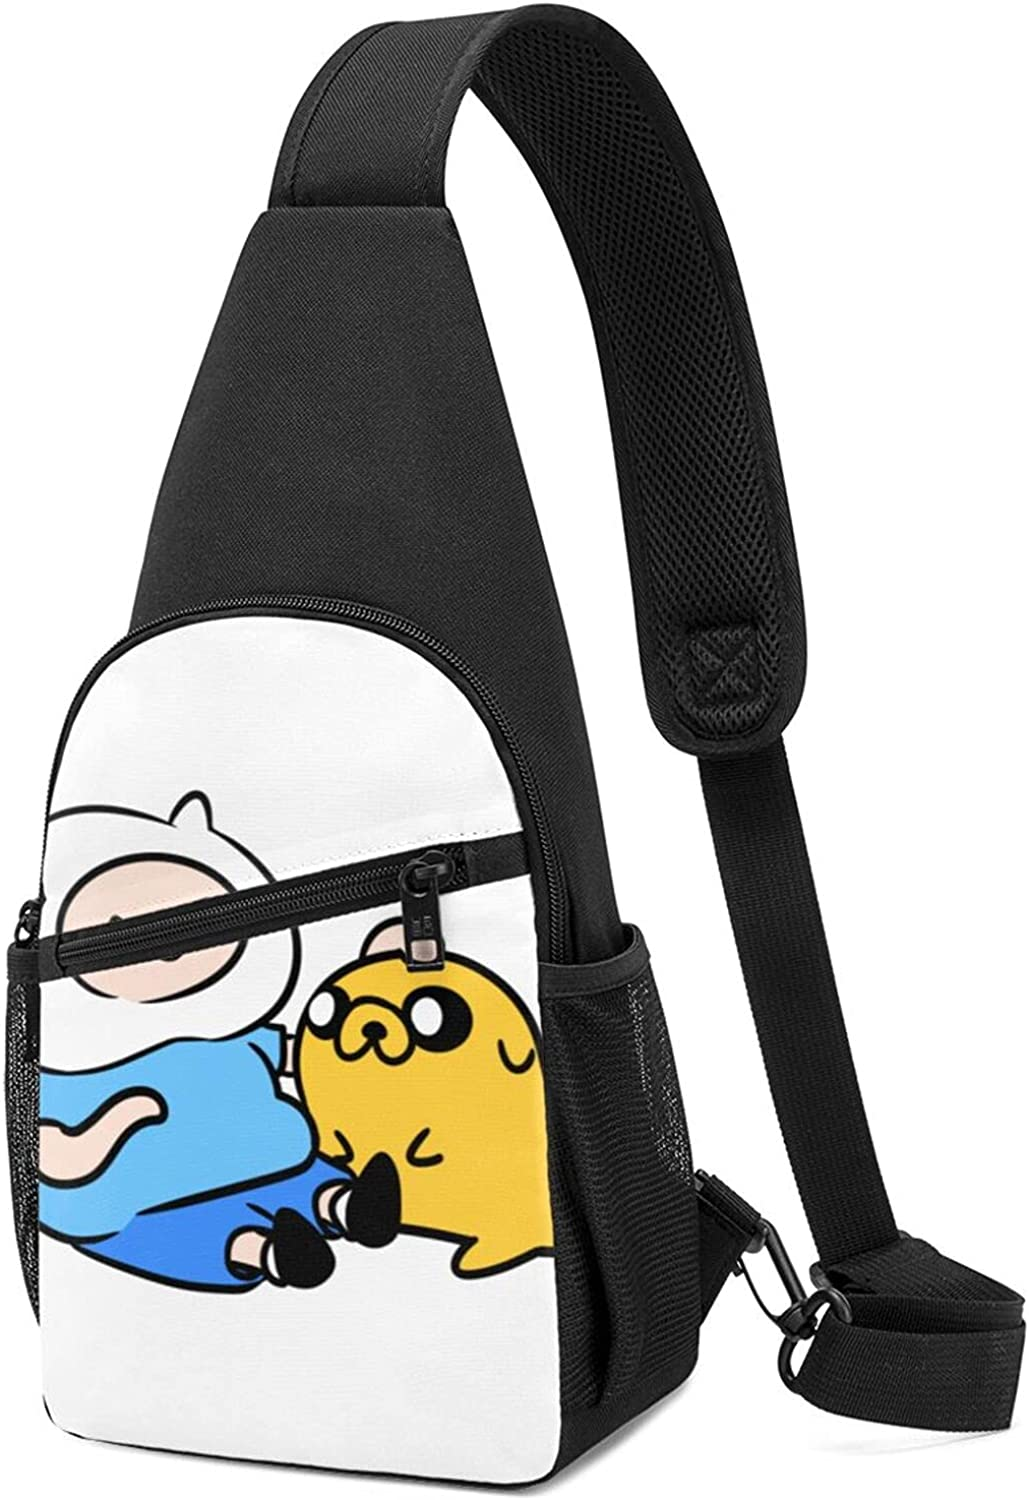 Dealing full price reduction Chest Bag Adventure Time Finn And Sling Shoulder Mini Jake B Sales for sale